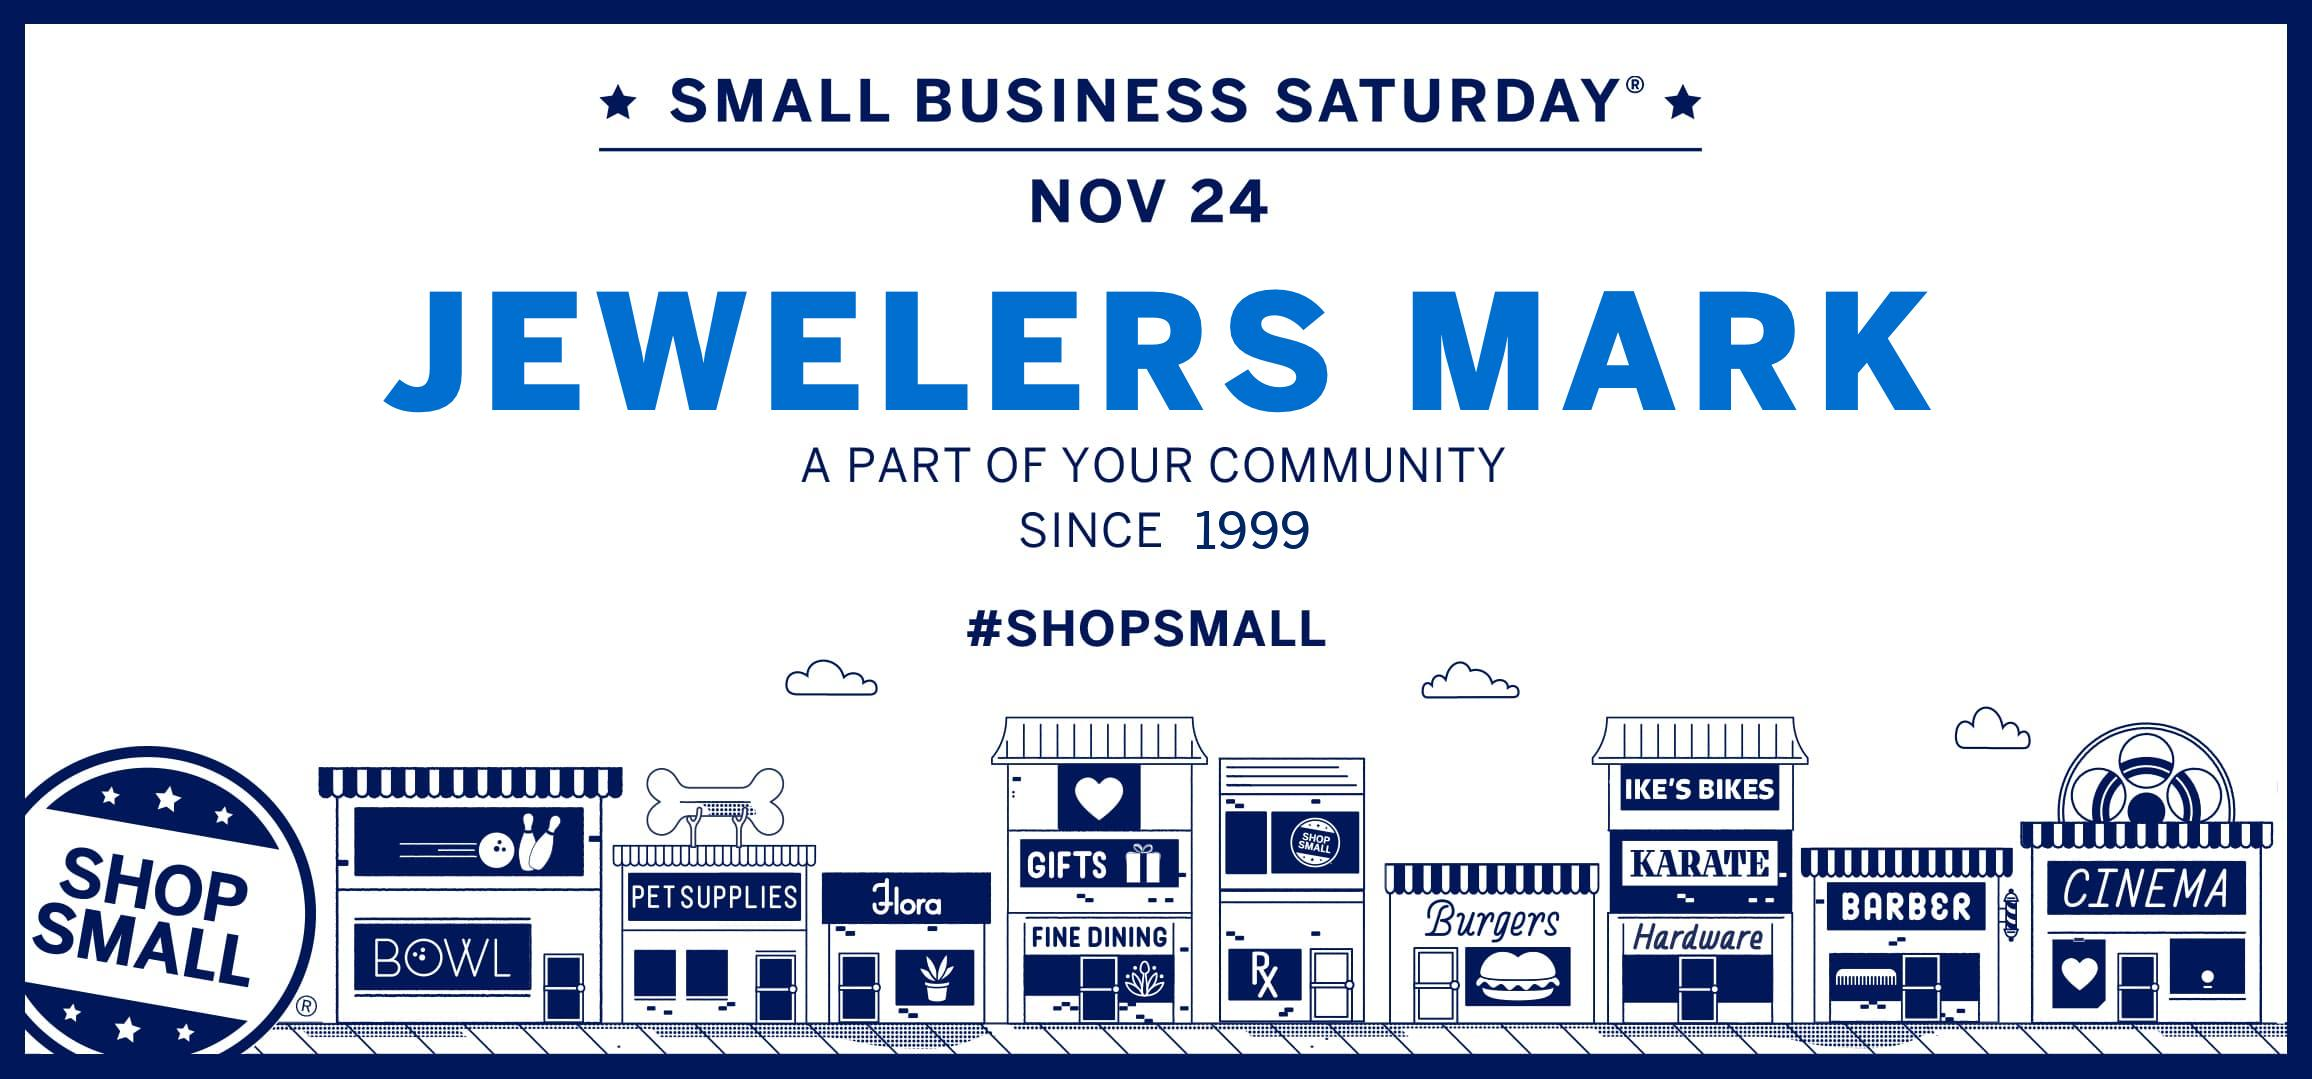 Small Business Saturday November 24